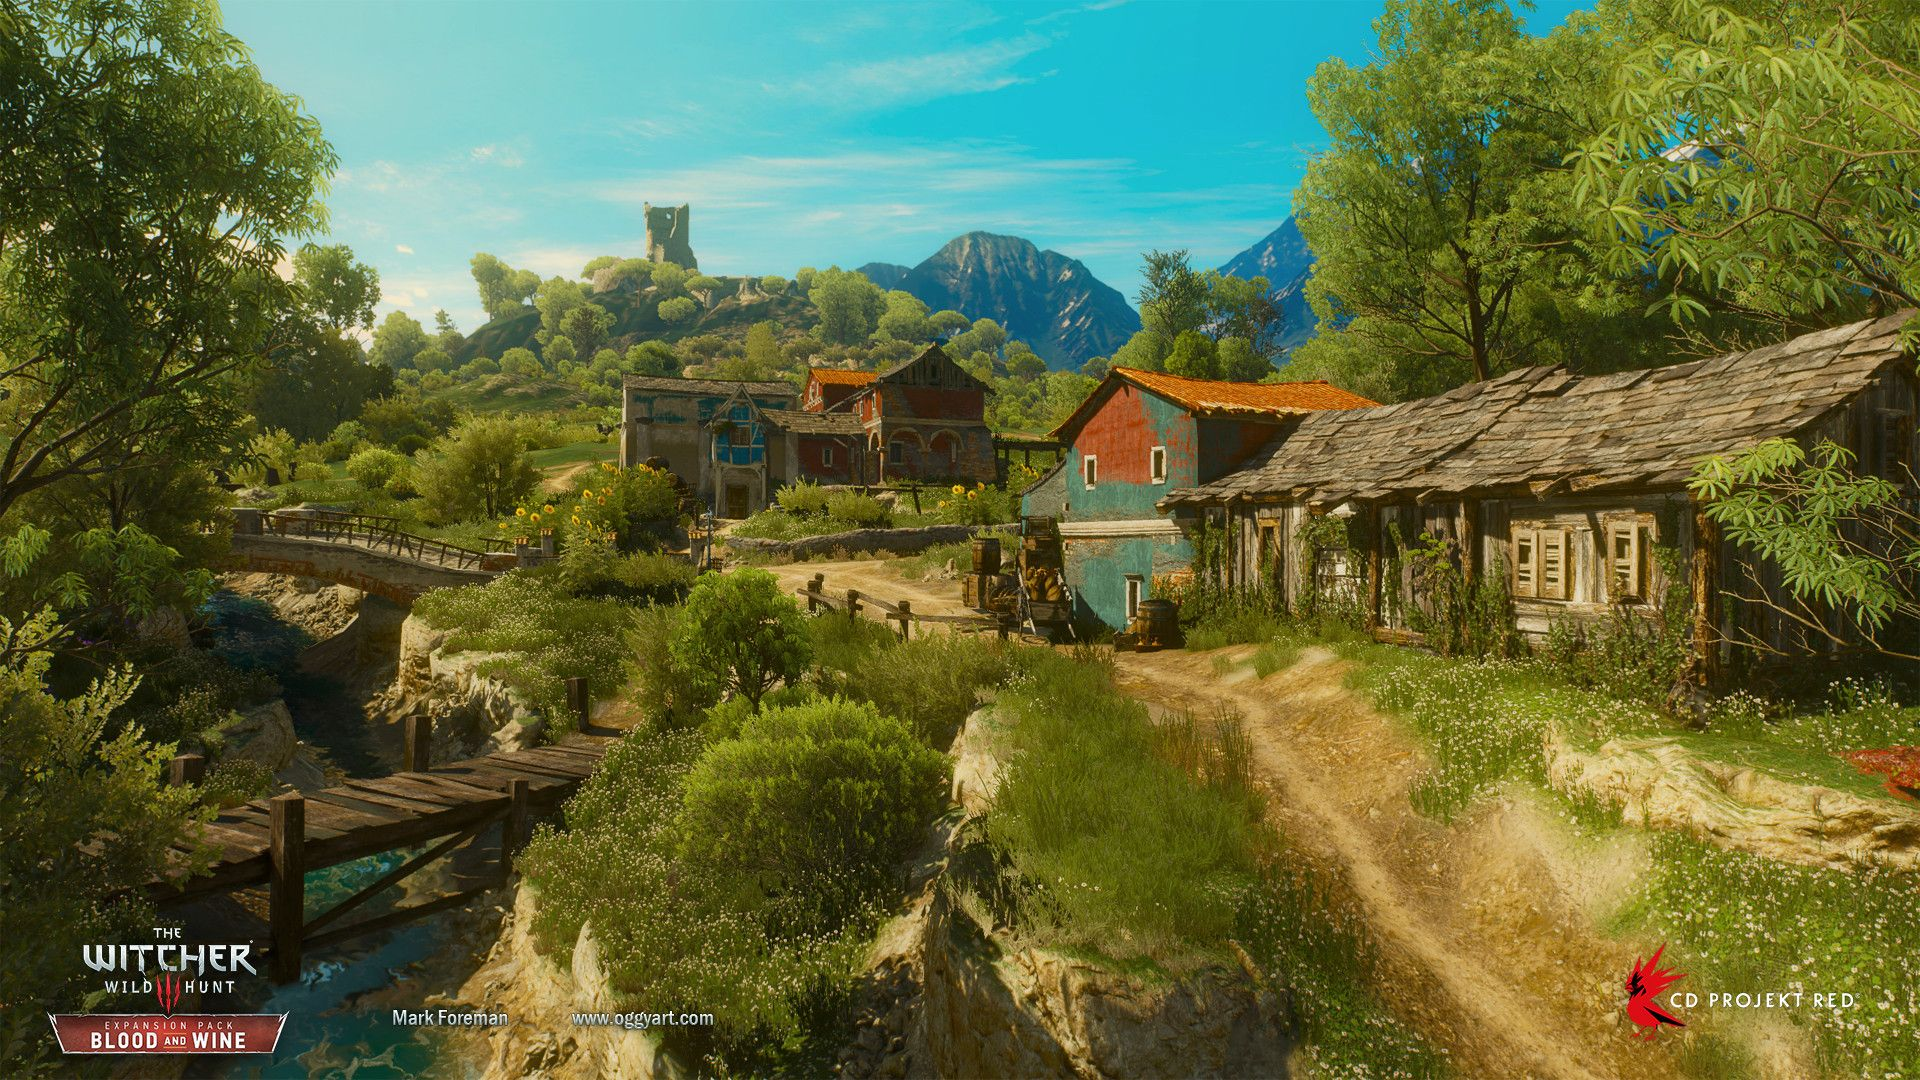 ArtStation - The Witcher 3: Blood and Wine, Mark Foreman